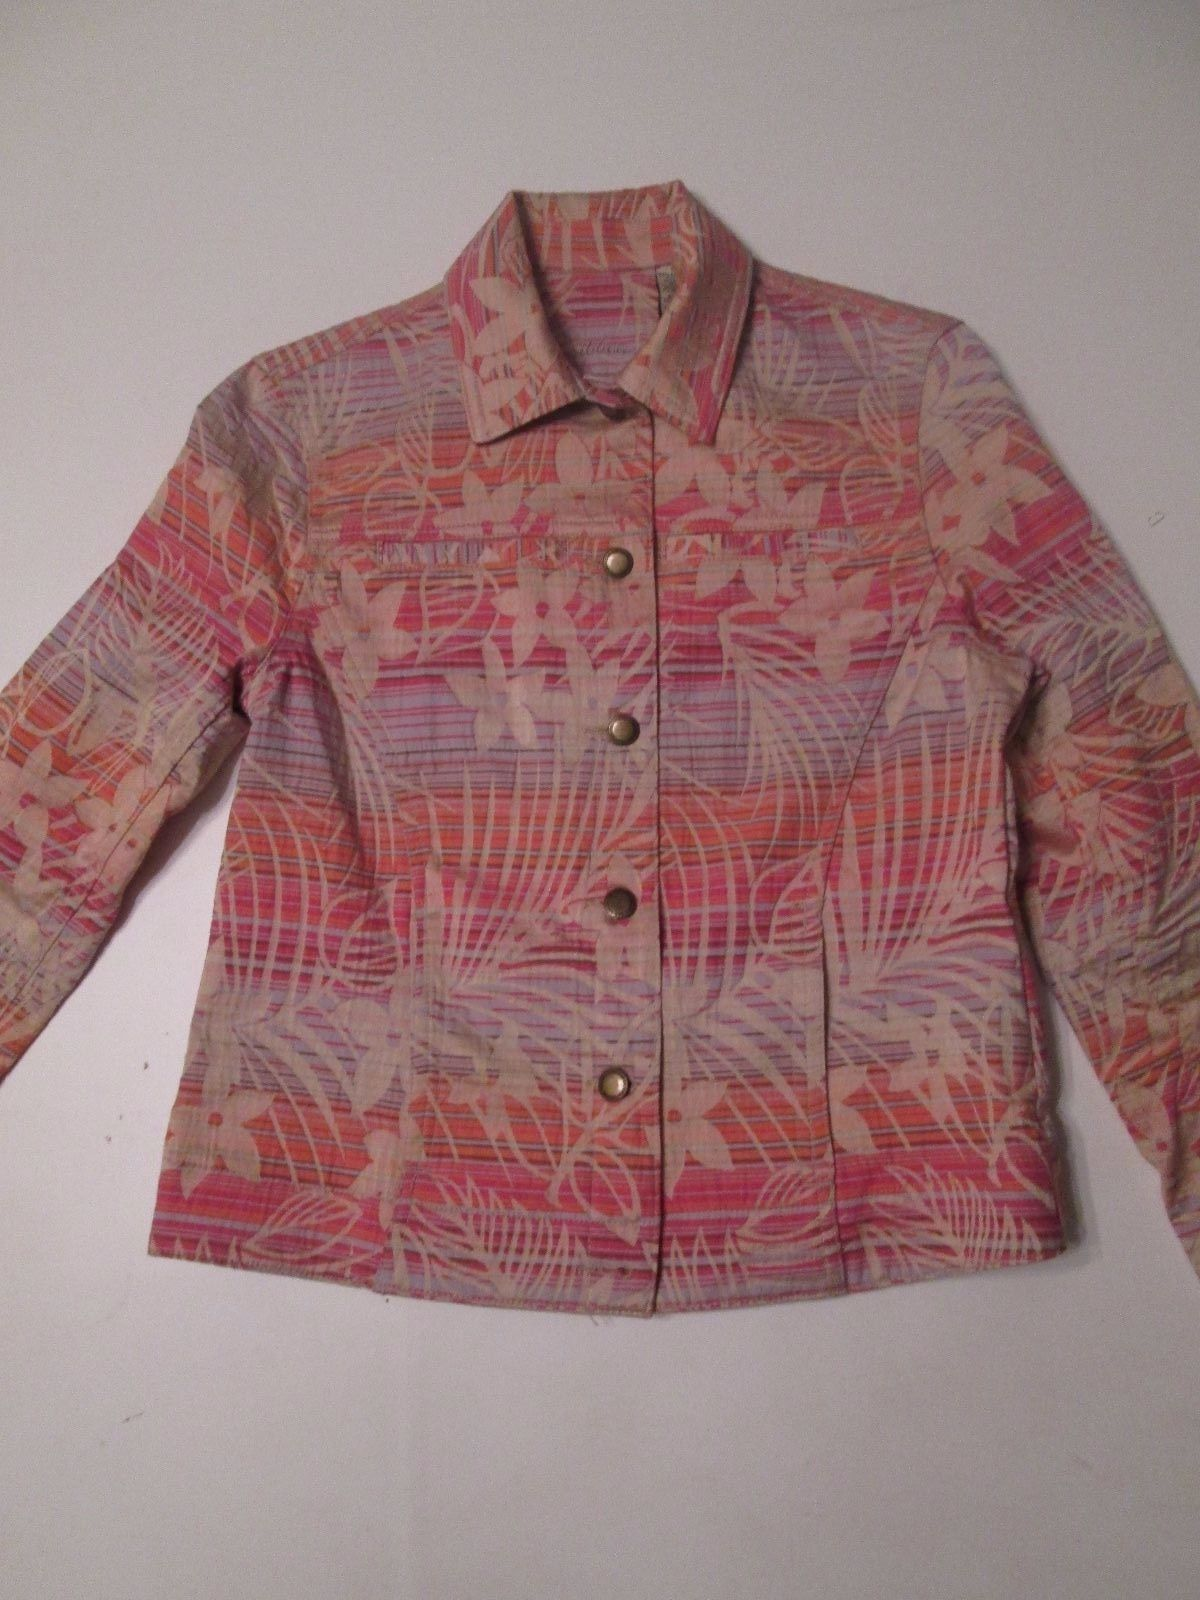 CARIBBEAN JOE WOMEN'S JACKET SIZE SMALL  #N3 - $22.79